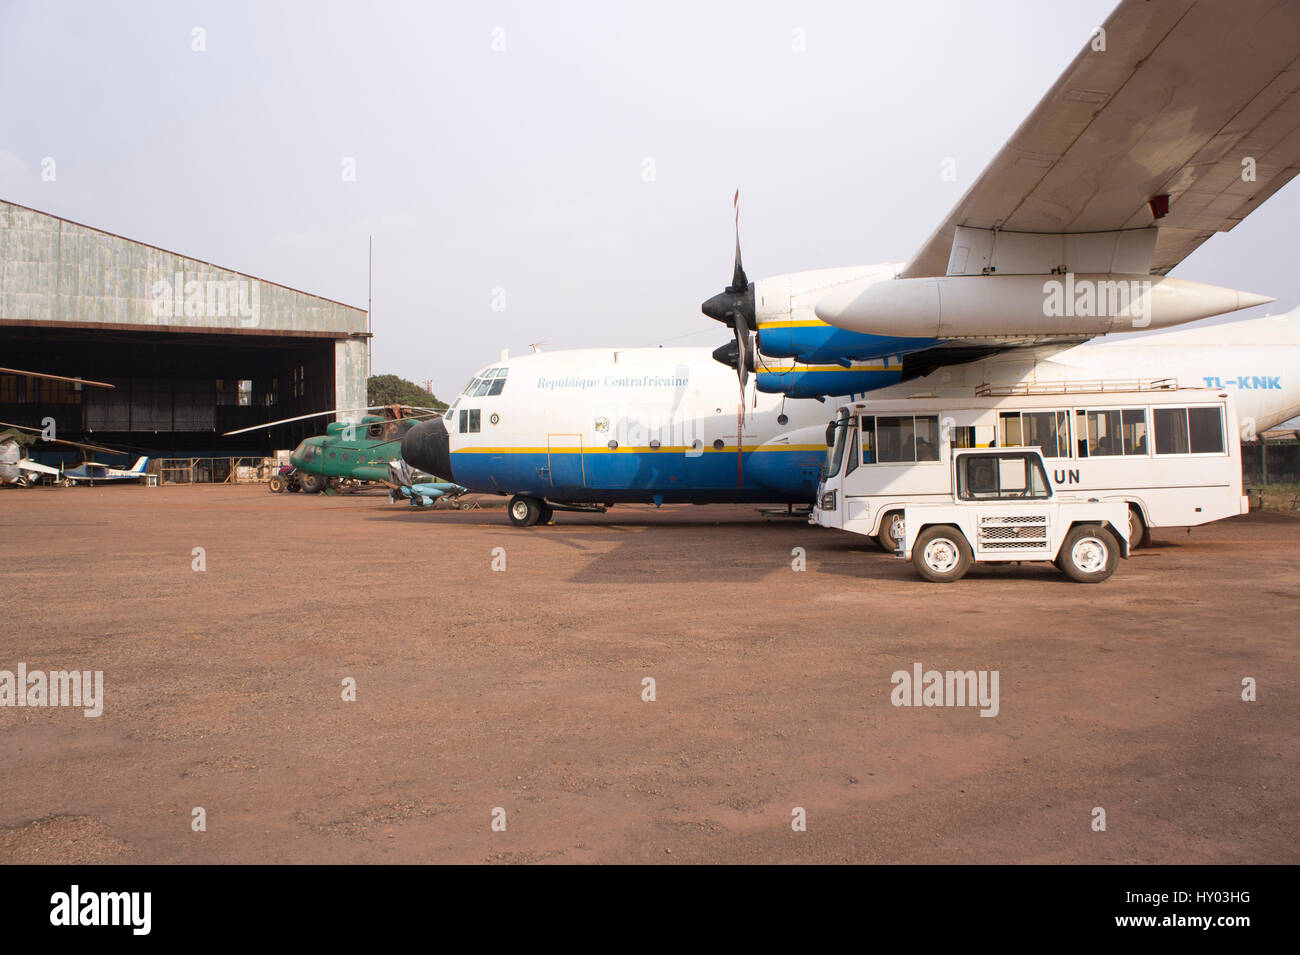 Lockheed C130A Hercules aircraft, tail number TL-KNK, belonging to the Central African Republic Air Force, parked - Stock Image